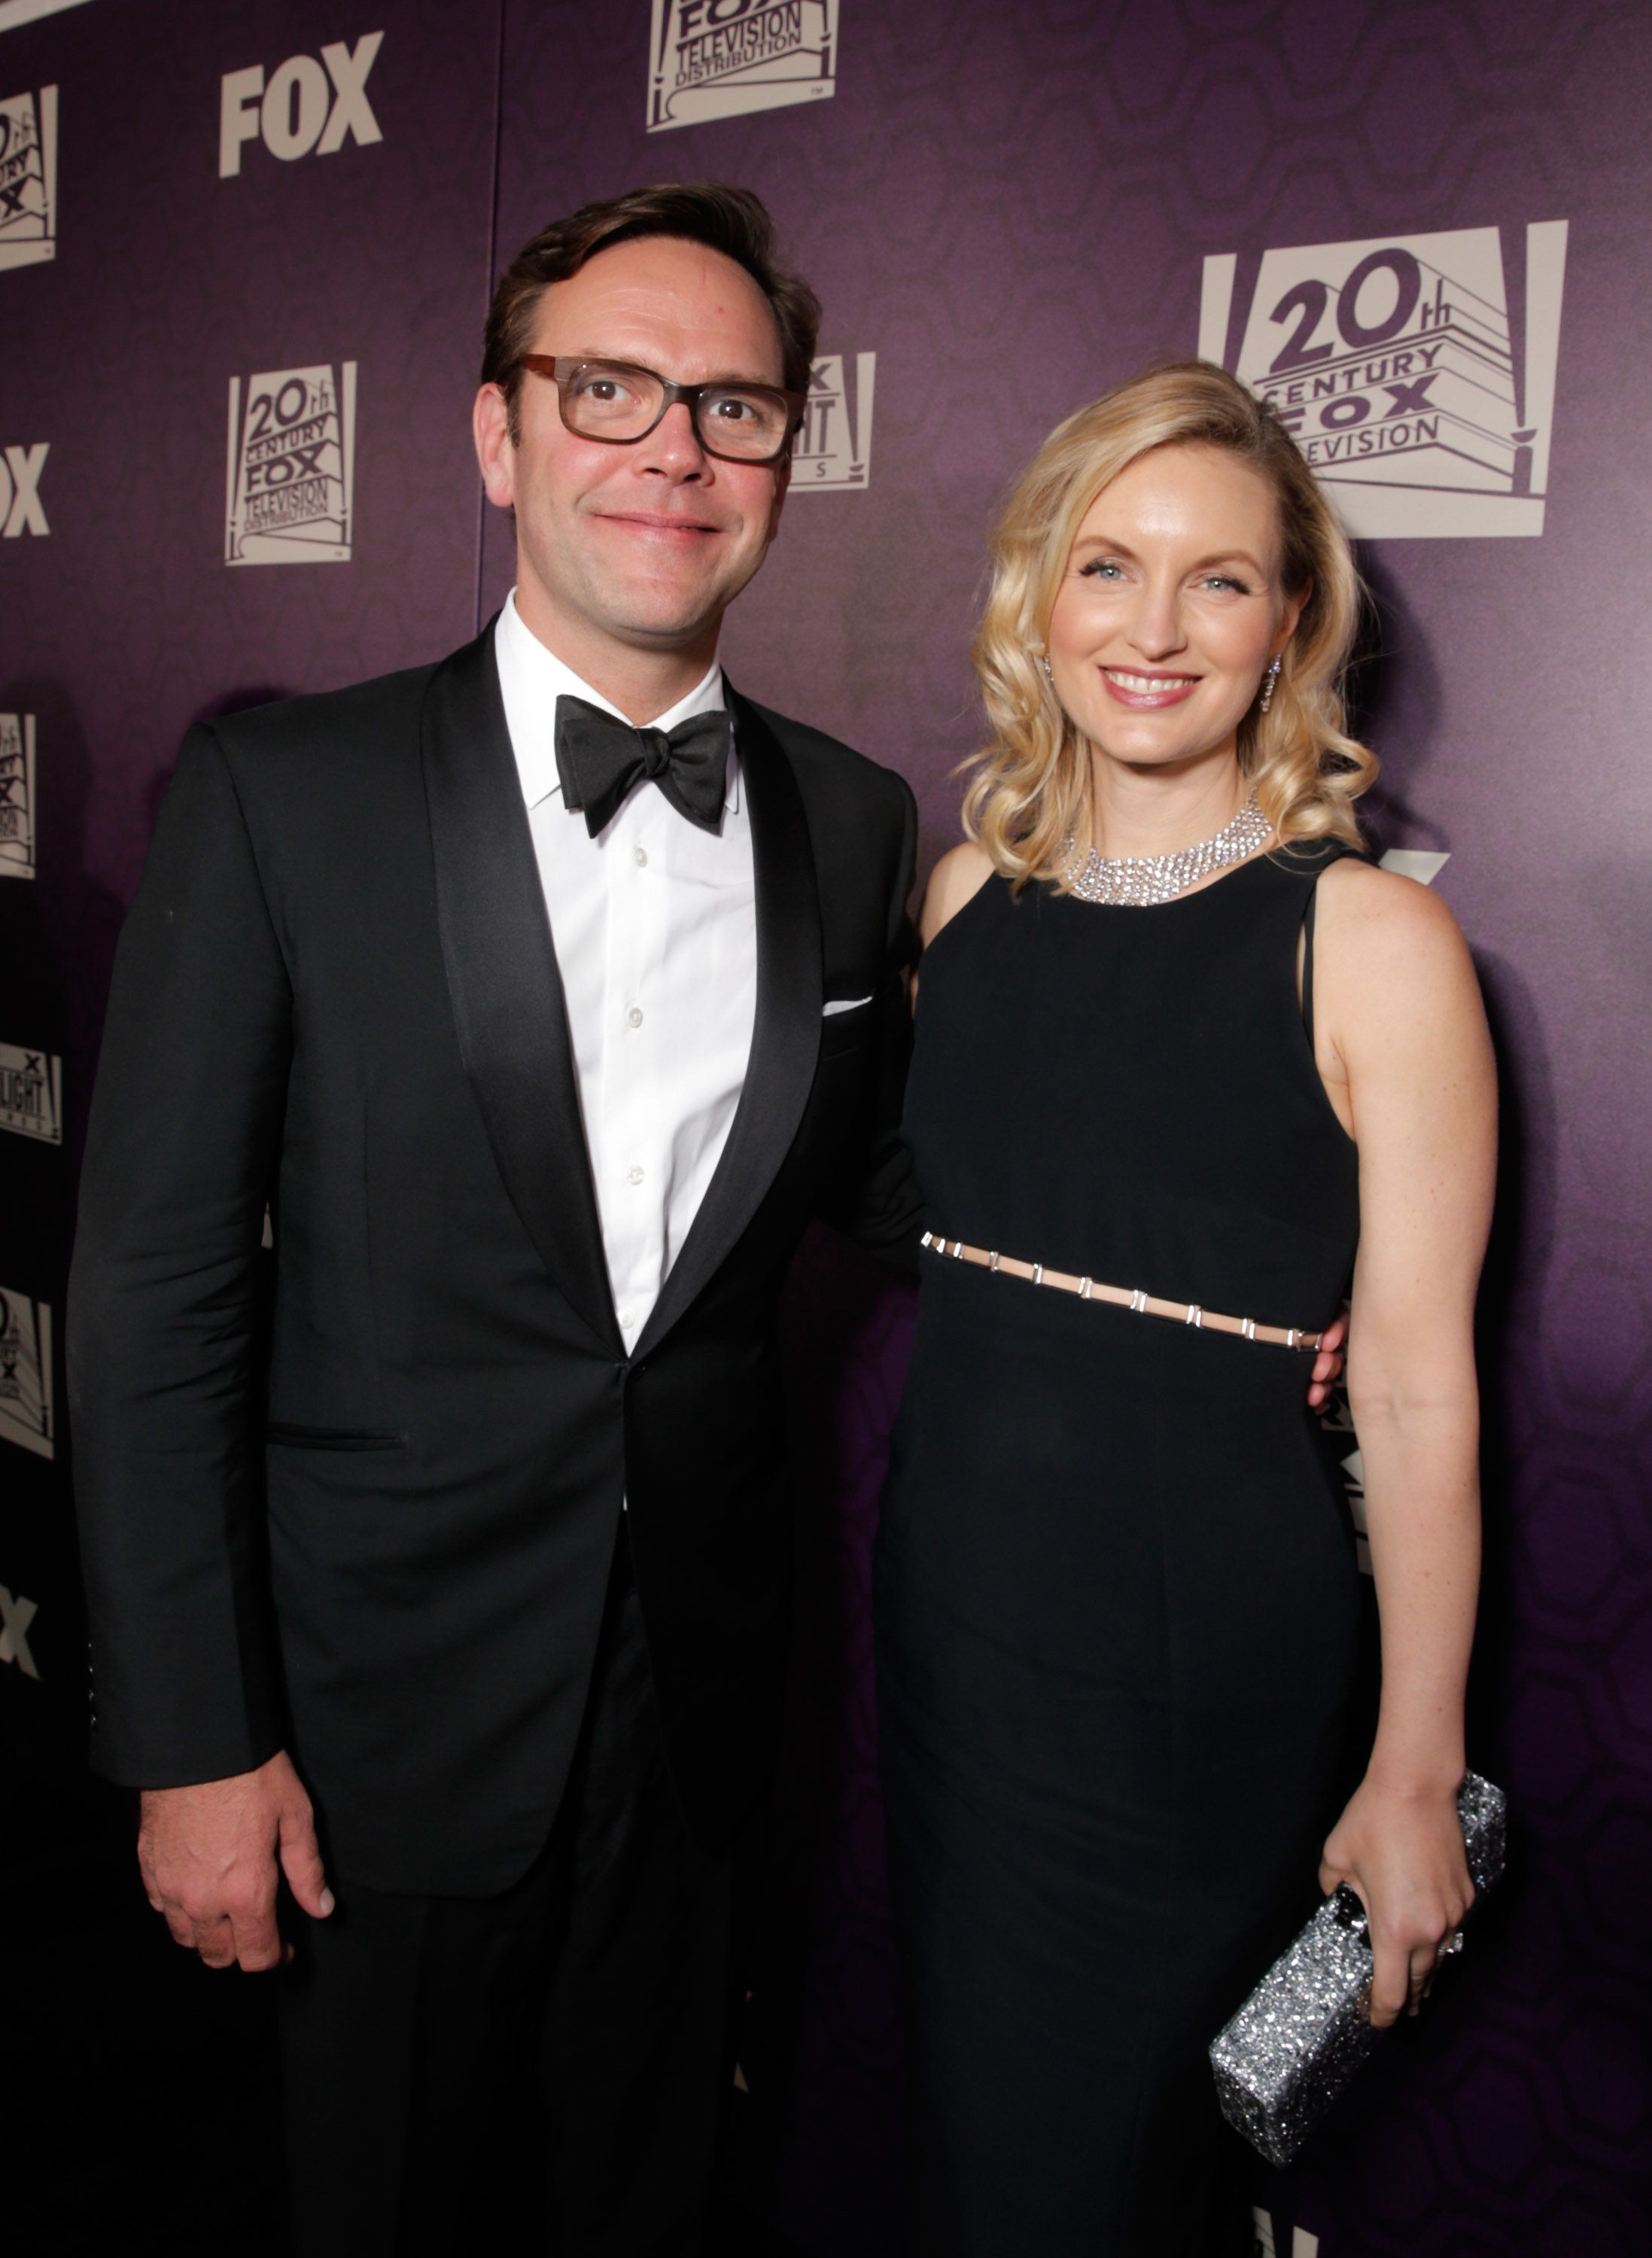 James Murdoch, Chief Operating Officer, 21st Century Fox, and Kathryn Murdoch Hufschmid are seen at FOX's 72nd annual Golden Globe Awards Party at the Beverly Hilton Hotel on Sunday, Jan. 11, 2015, in Beverly Hills, Calif. (Photo by Todd Williamson/Invision for Fox Searchlight/AP Images)